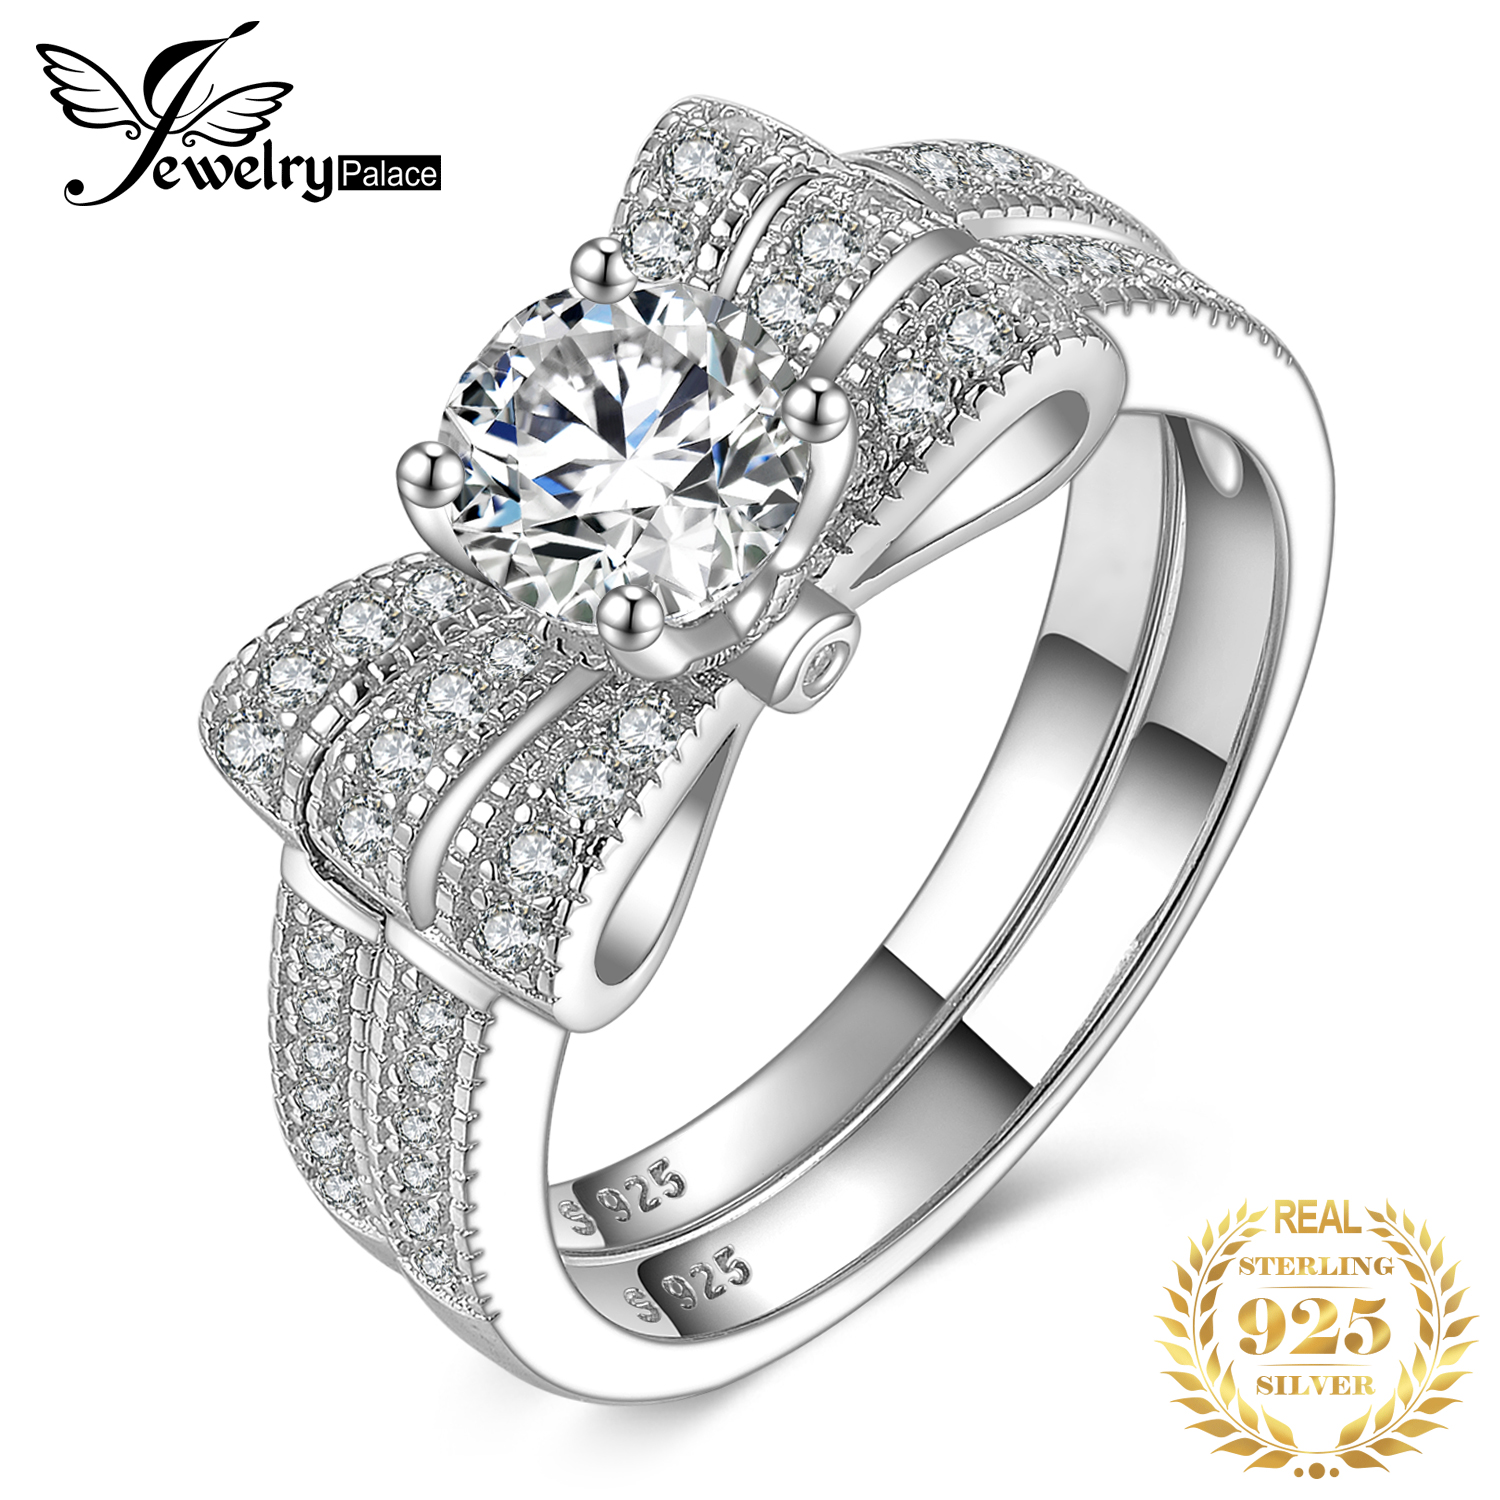 JewelryPalace Round 1ct Cubic Zirconia Ribbon Bowknot Engagement Wedding Ring Sets 925 Sterling Silver Rings For Women Jewelry